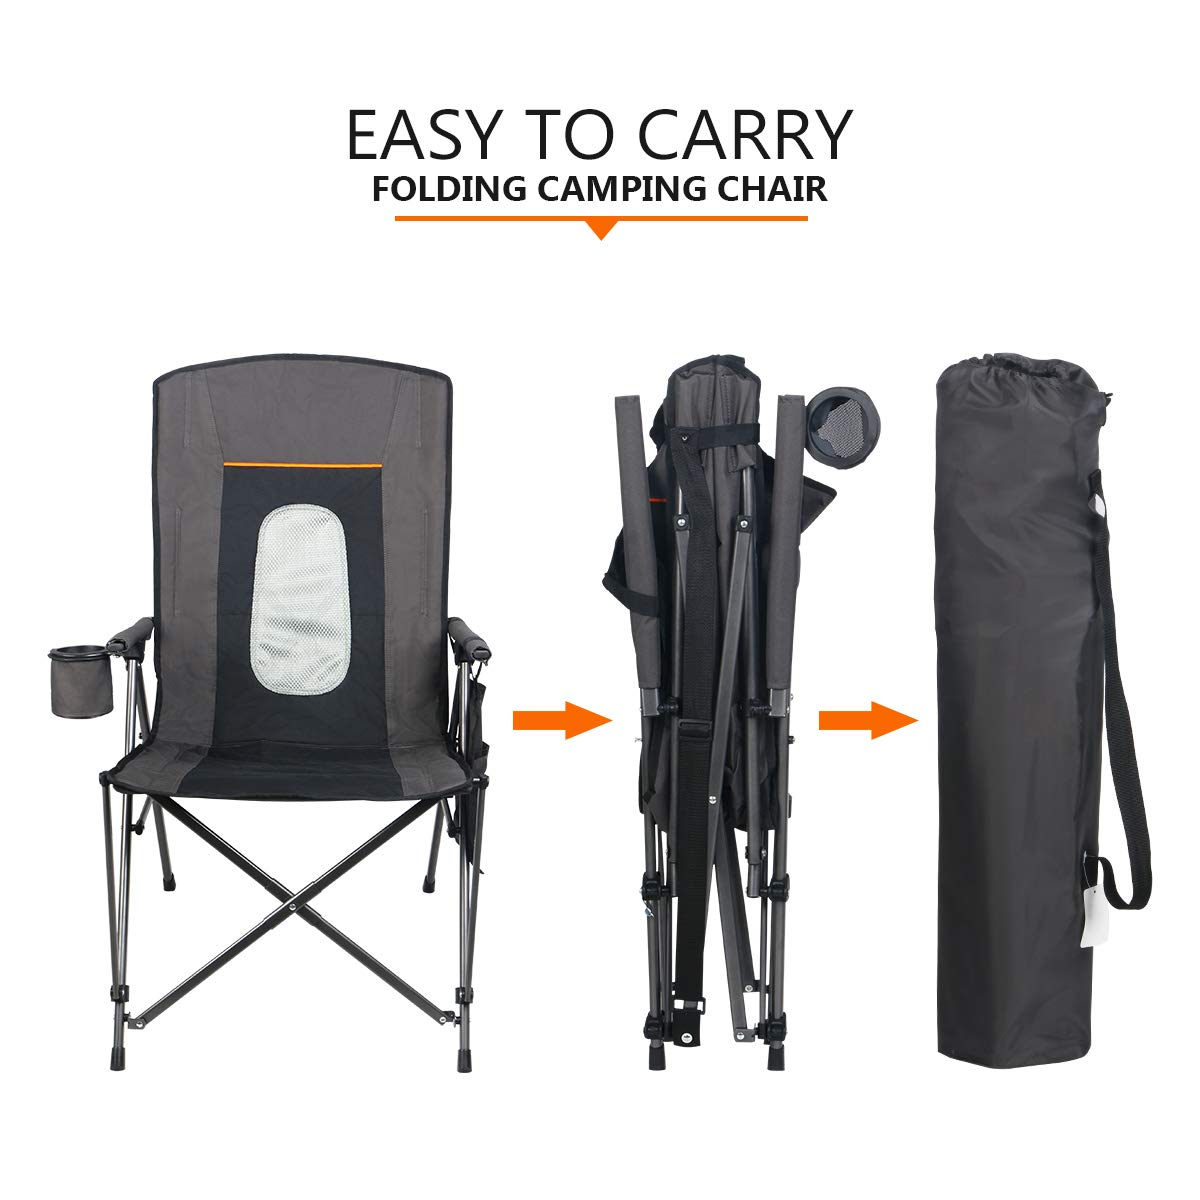 Support 300 lbs PORTAL Oversized Quad Folding Camping Chair High Back Cup Holder Hard Armrest Storage Pockets Carry Bag Included